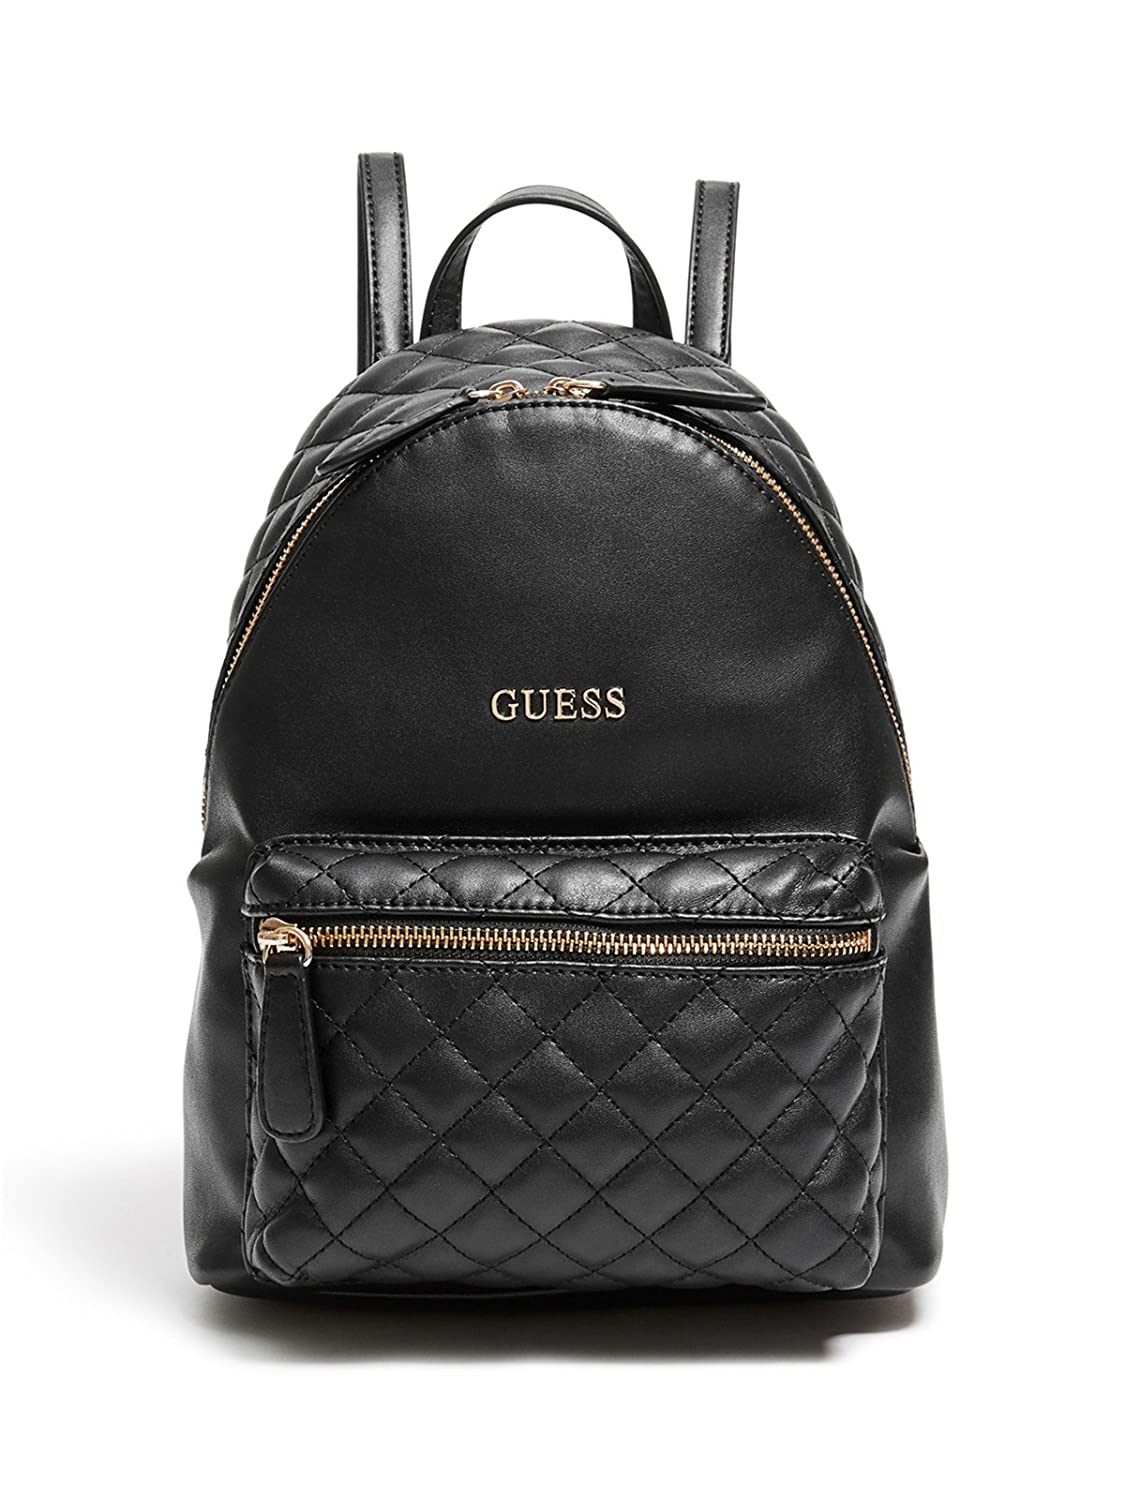 Guess Backpack for Women On Sale, Black, Leather, 2017, one size